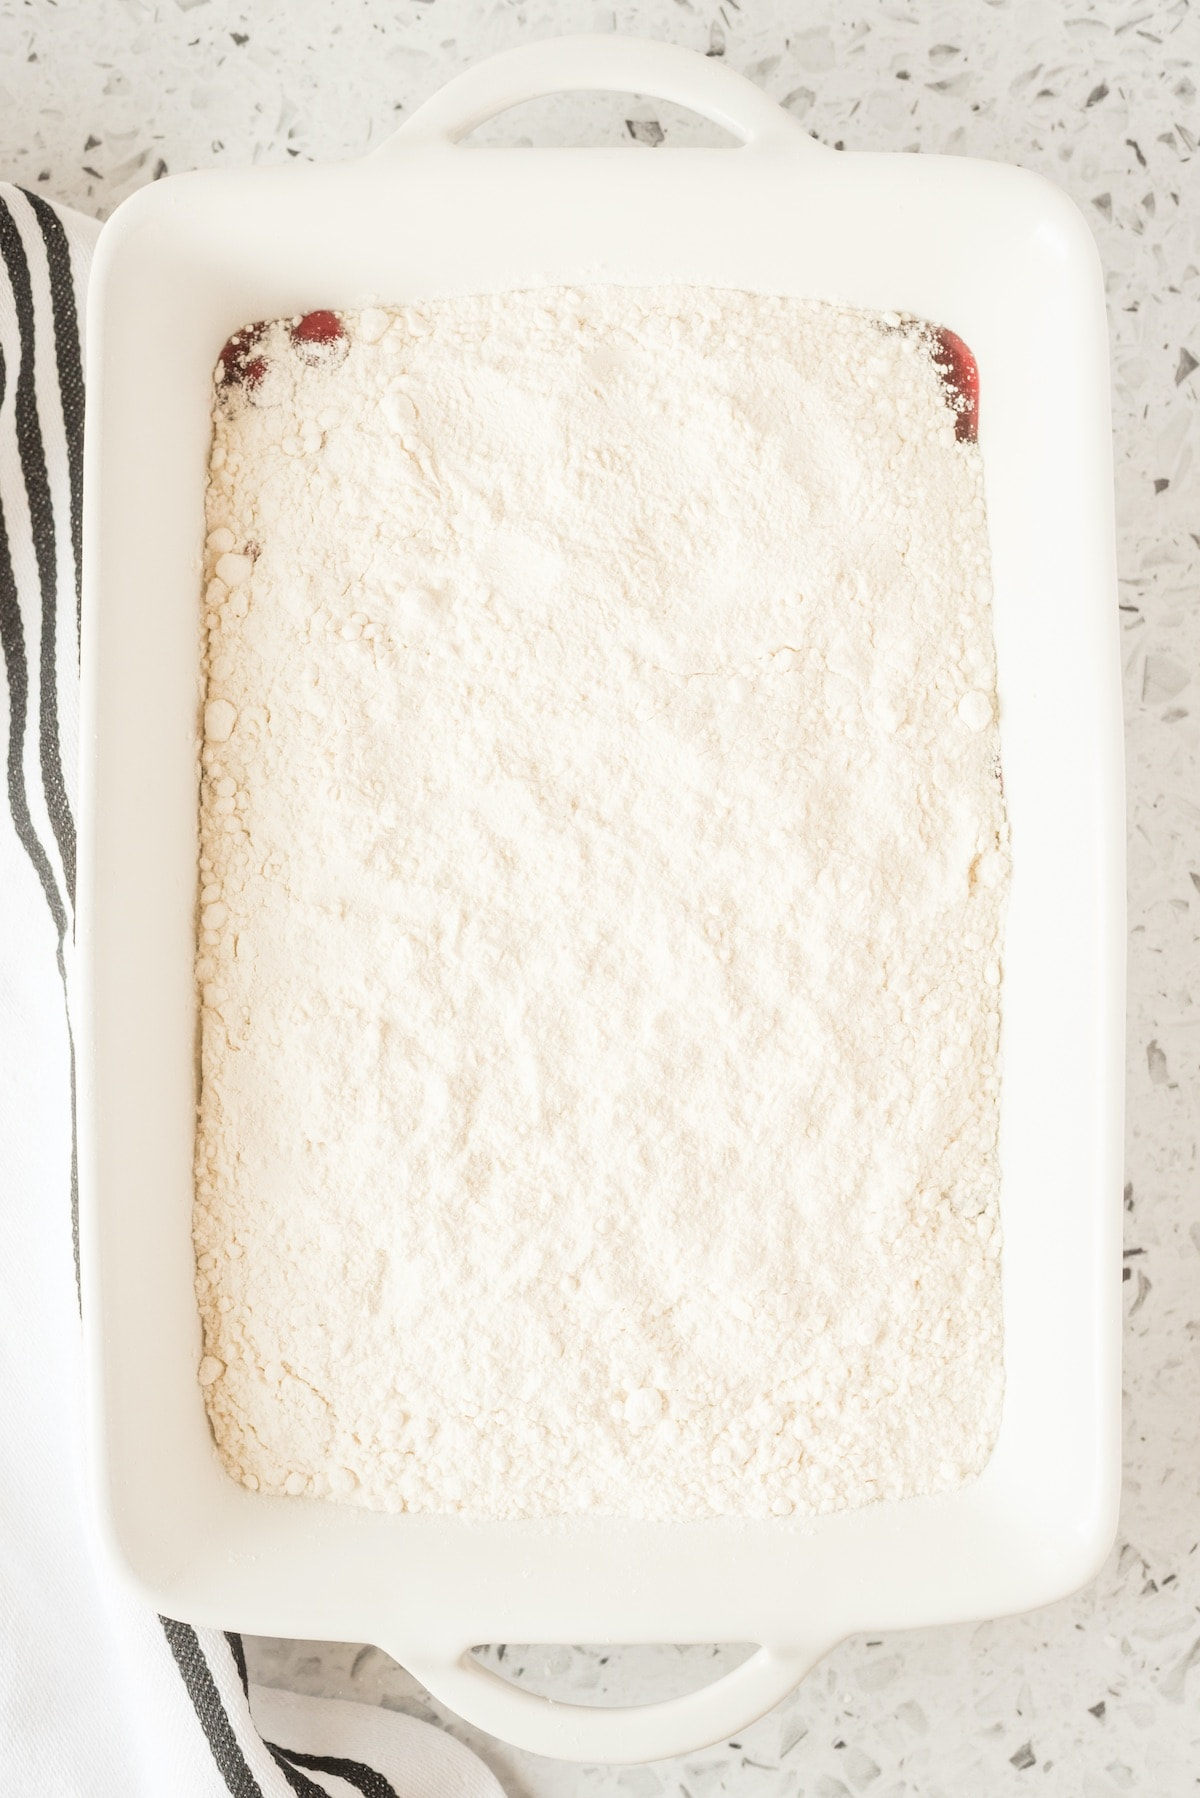 pour dry cake mix on top of the cherry filling